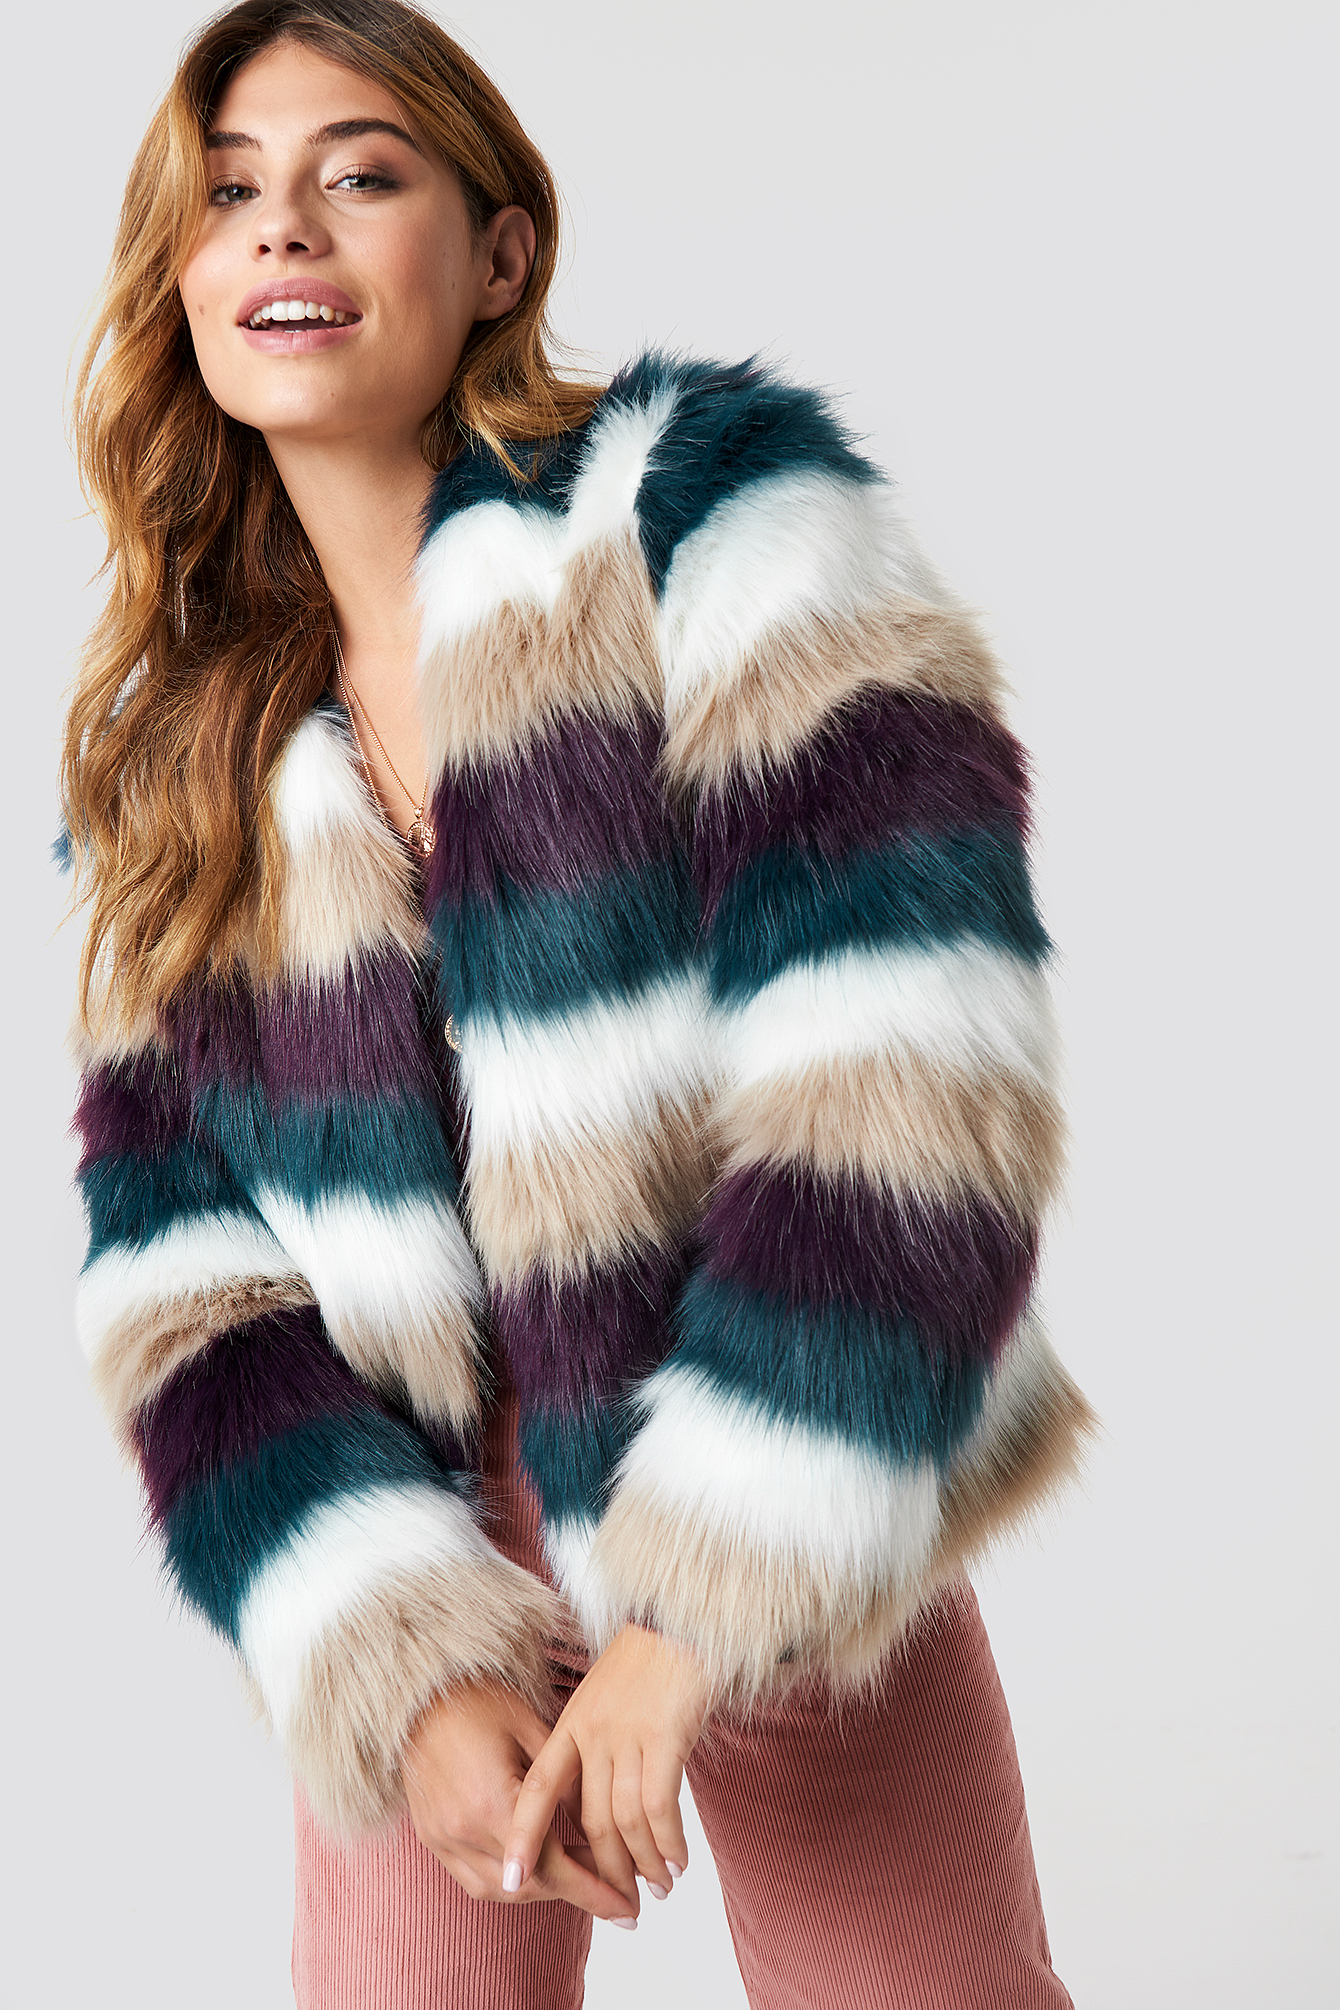 linn ahlborg x na-kd -  Striped Faux Fur Jacket - White,Red,Green,Beige,Multicolor